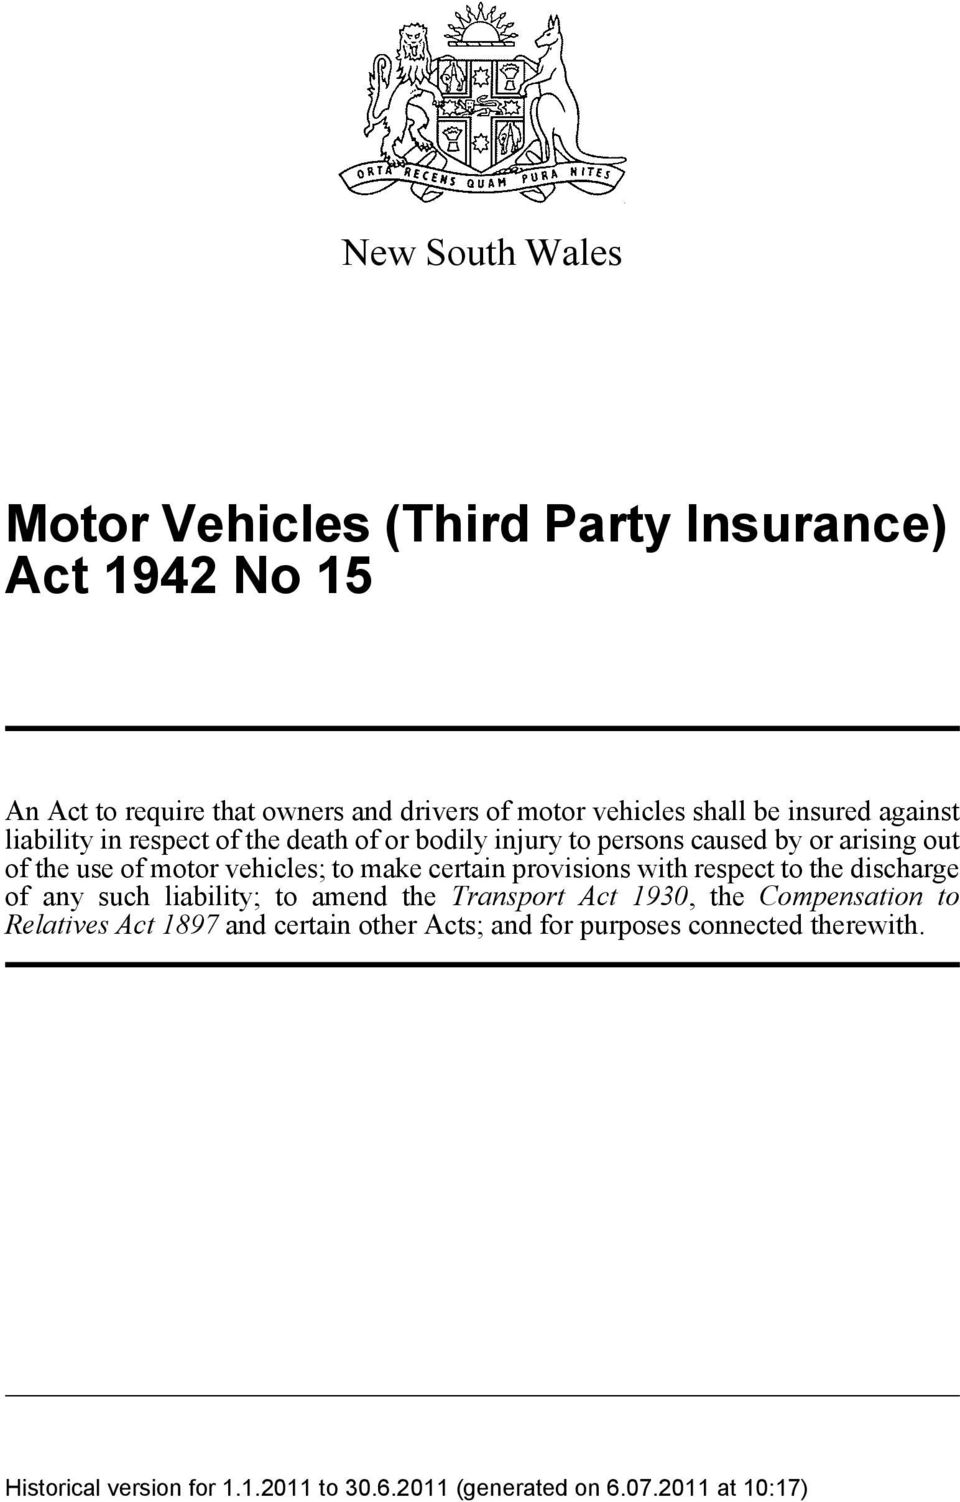 out of the use of motor vehicles; to make certain provisions with respect to the discharge of any such liability; to